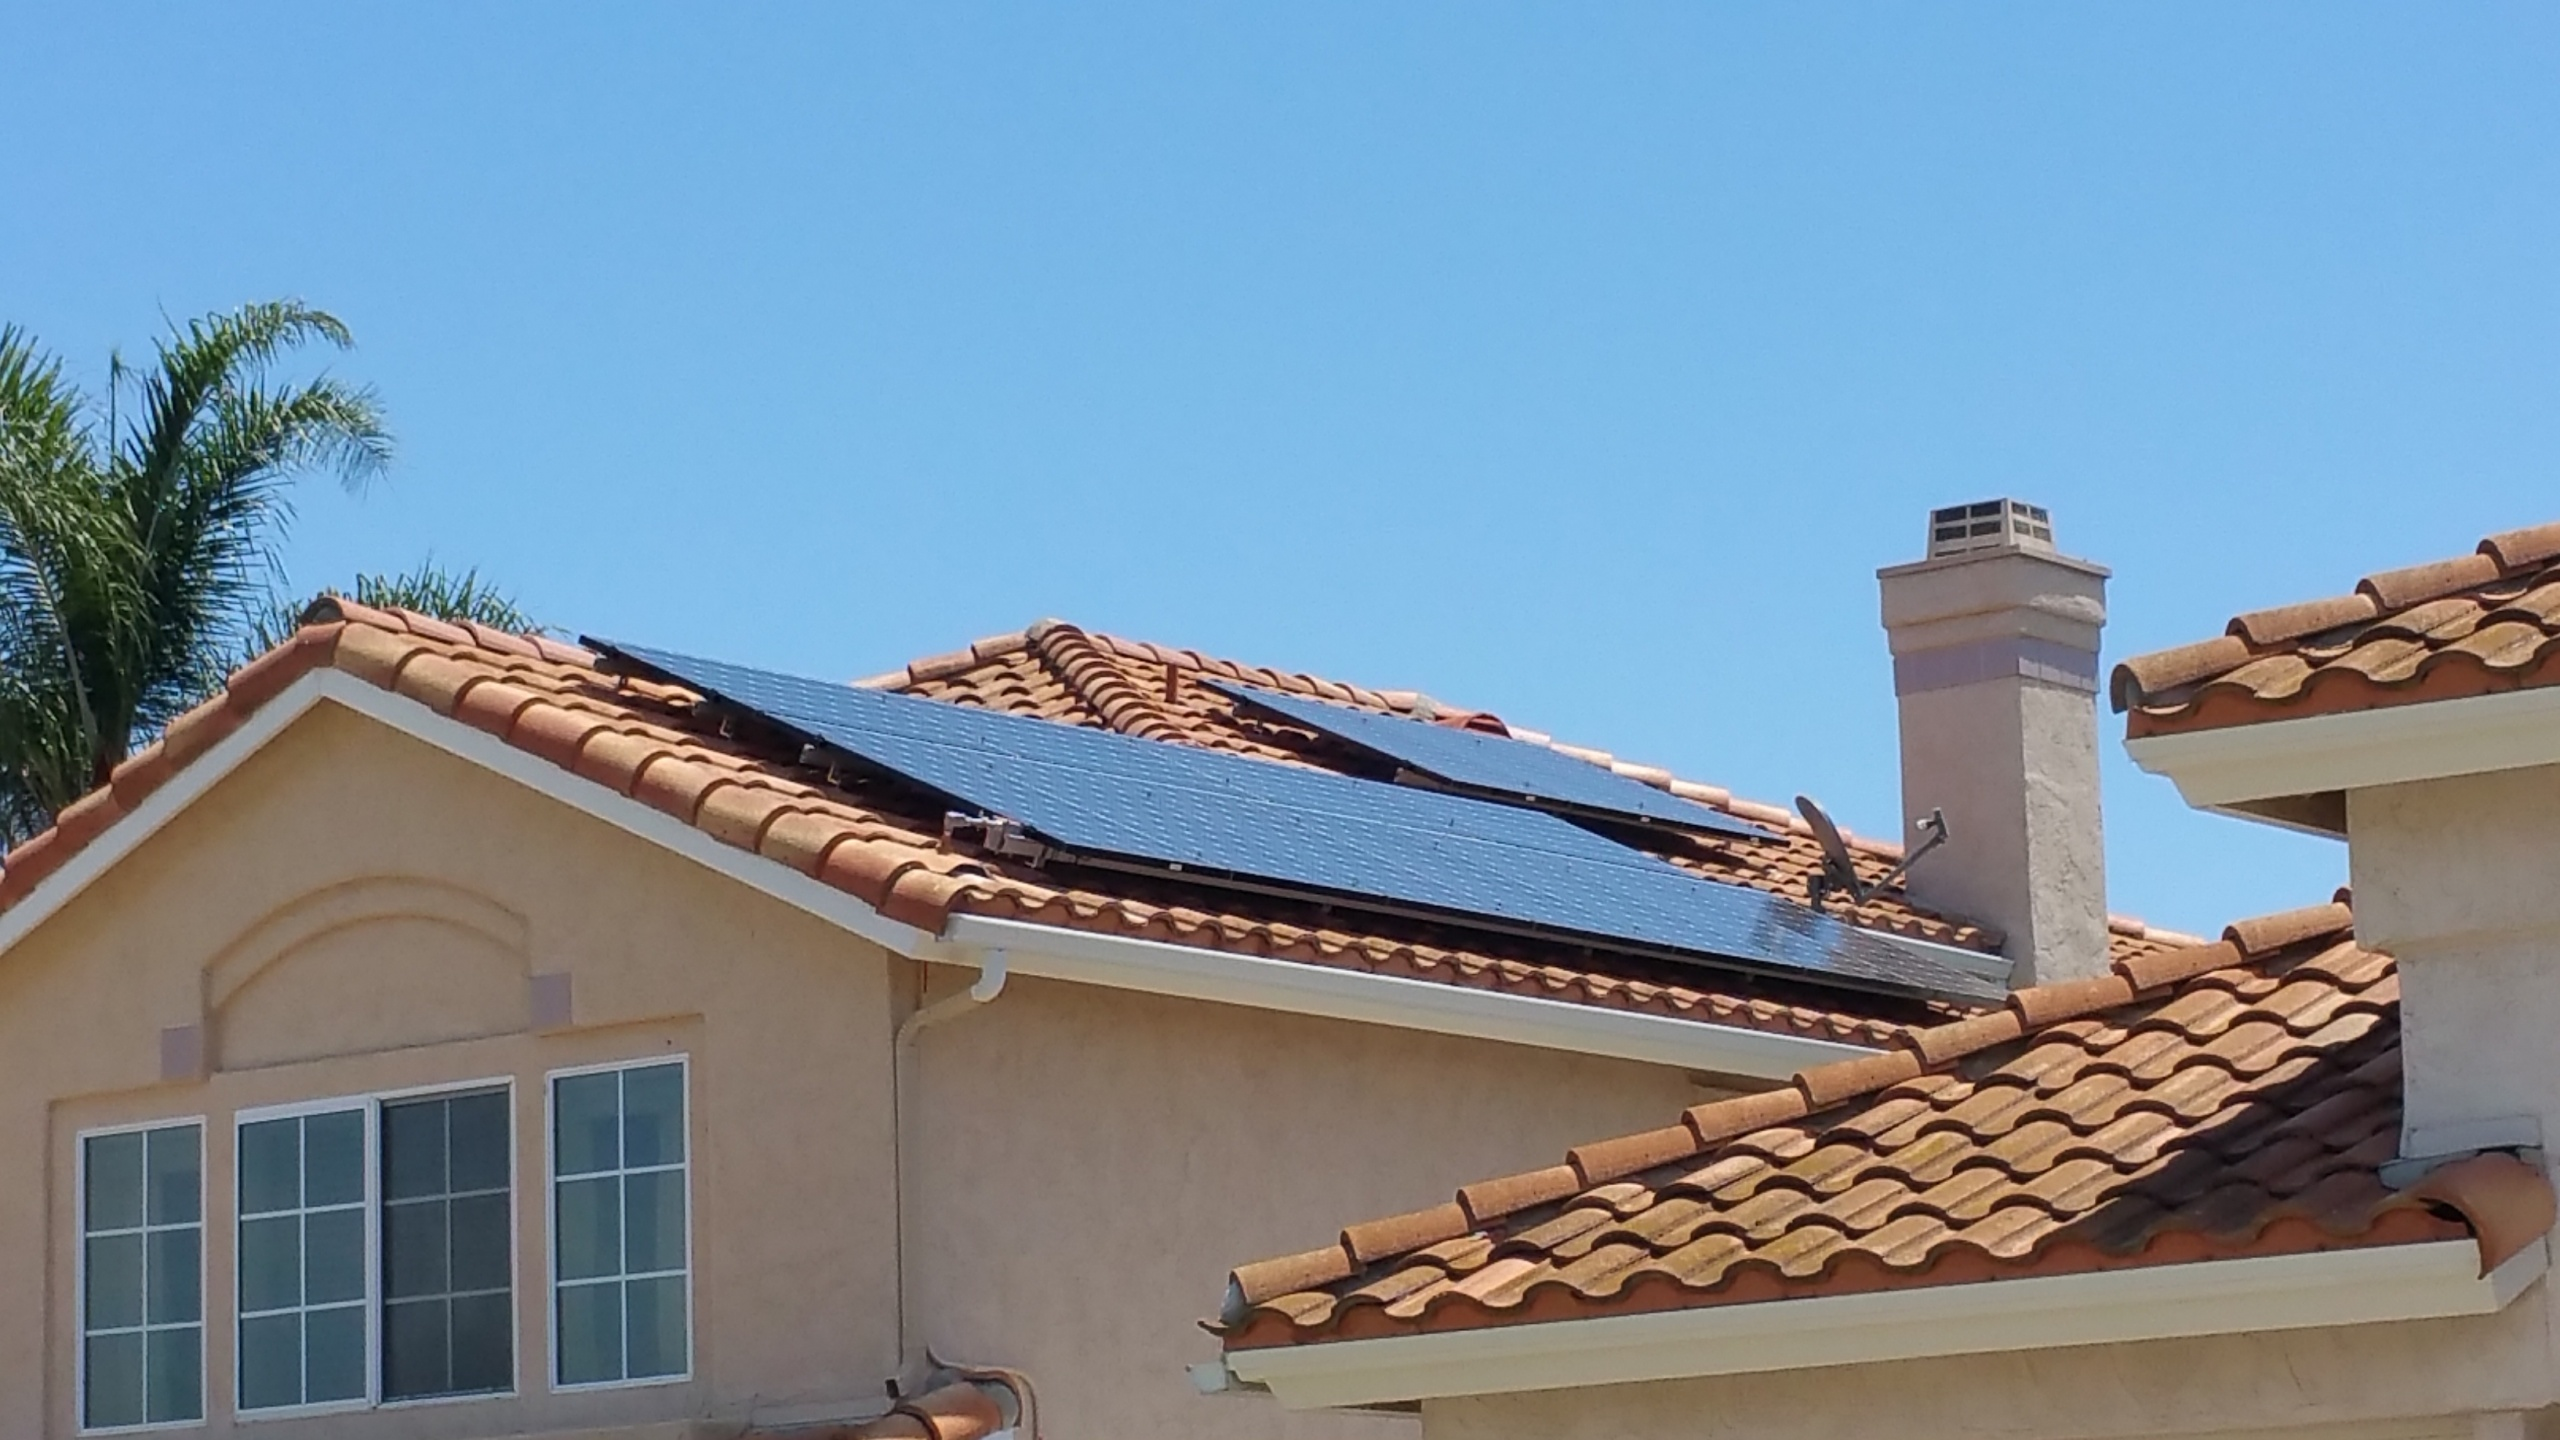 Makello determine fastest payback and lowest cost for solar.